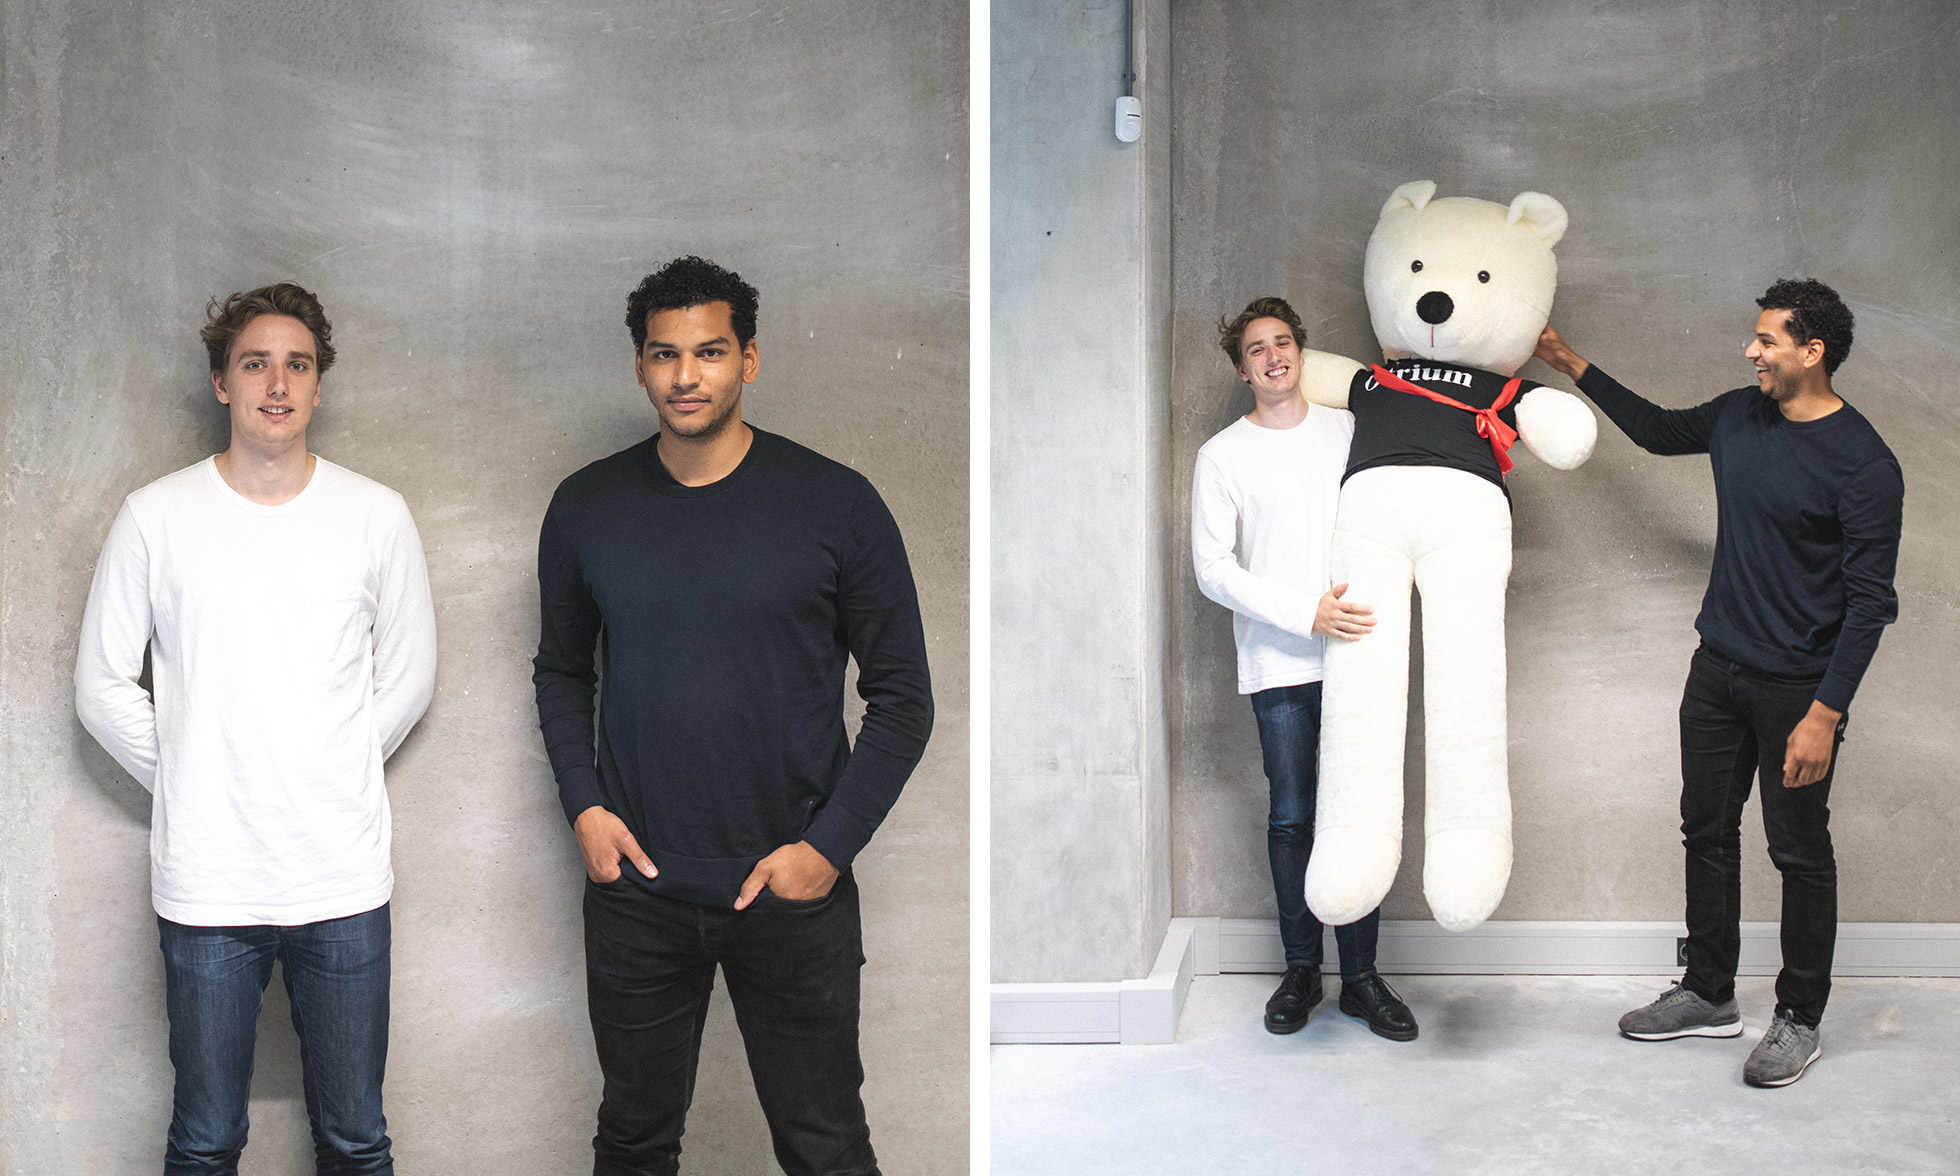 Otrium founders Max and Milan with a giant teddy bear